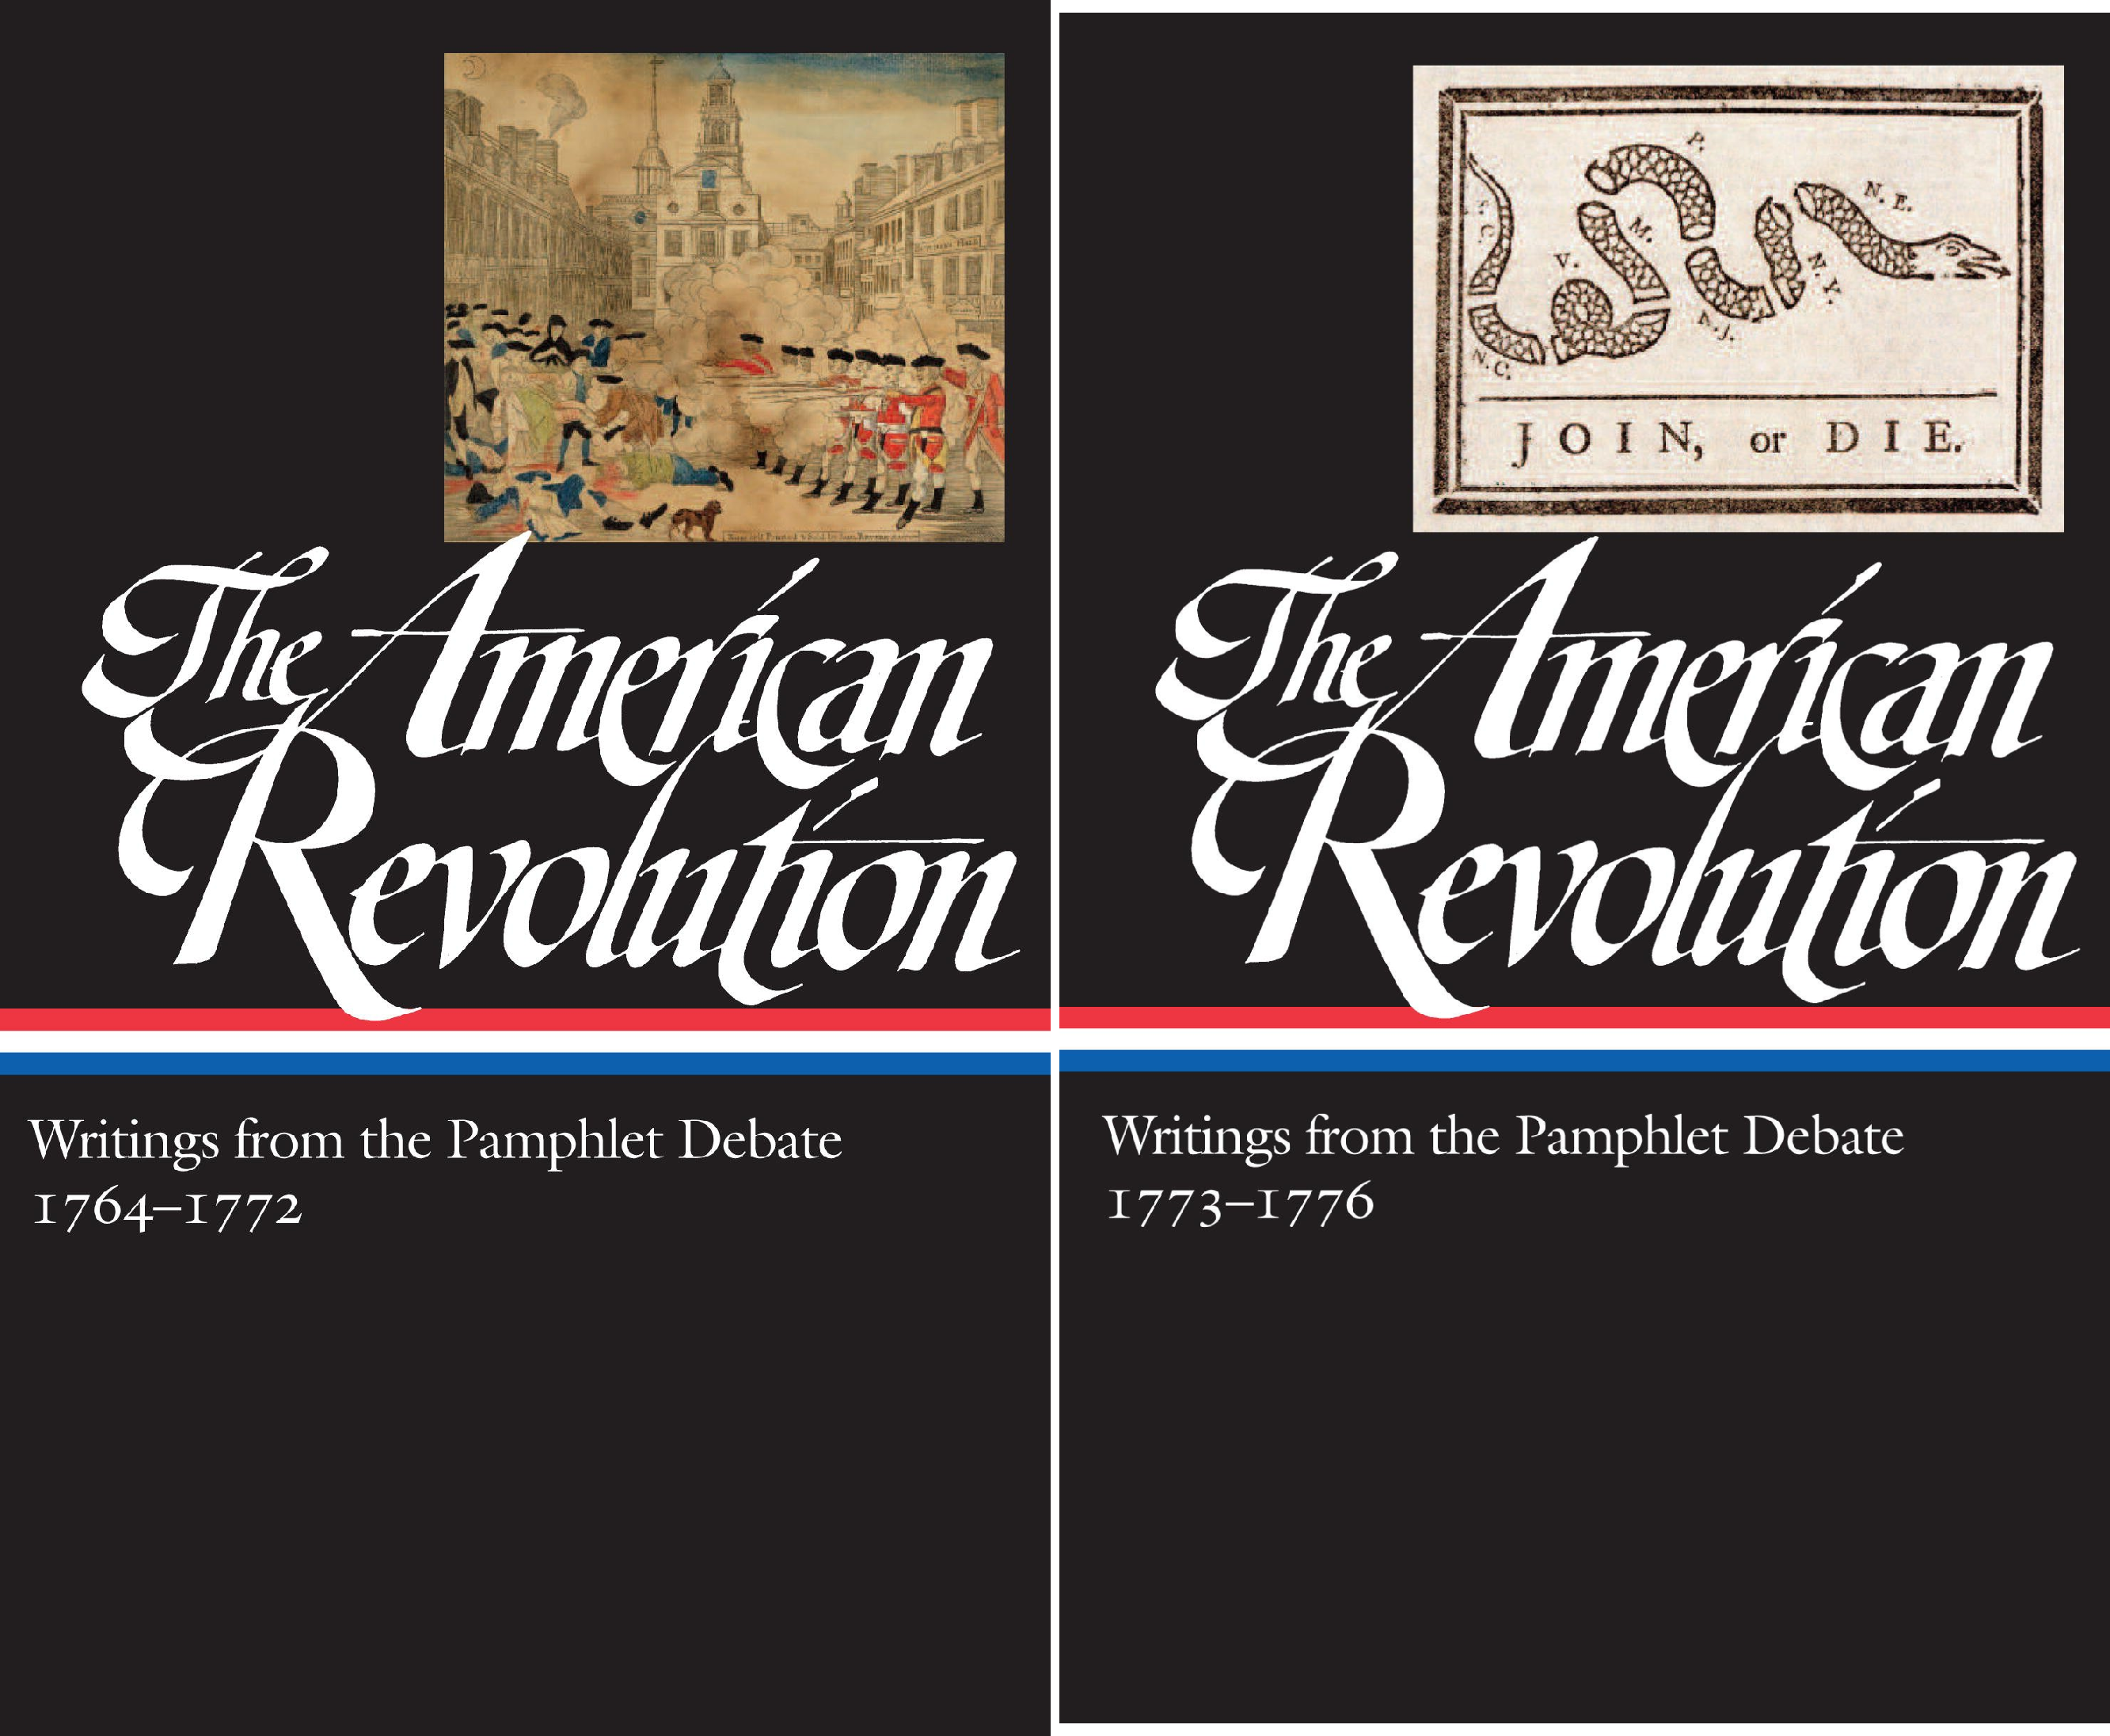 The American Revolution: Writings from the Pamphlet Debate 1764-1776 (Library of America) (2 Book Series) (The American Revolution A History Gordon Wood Summary)